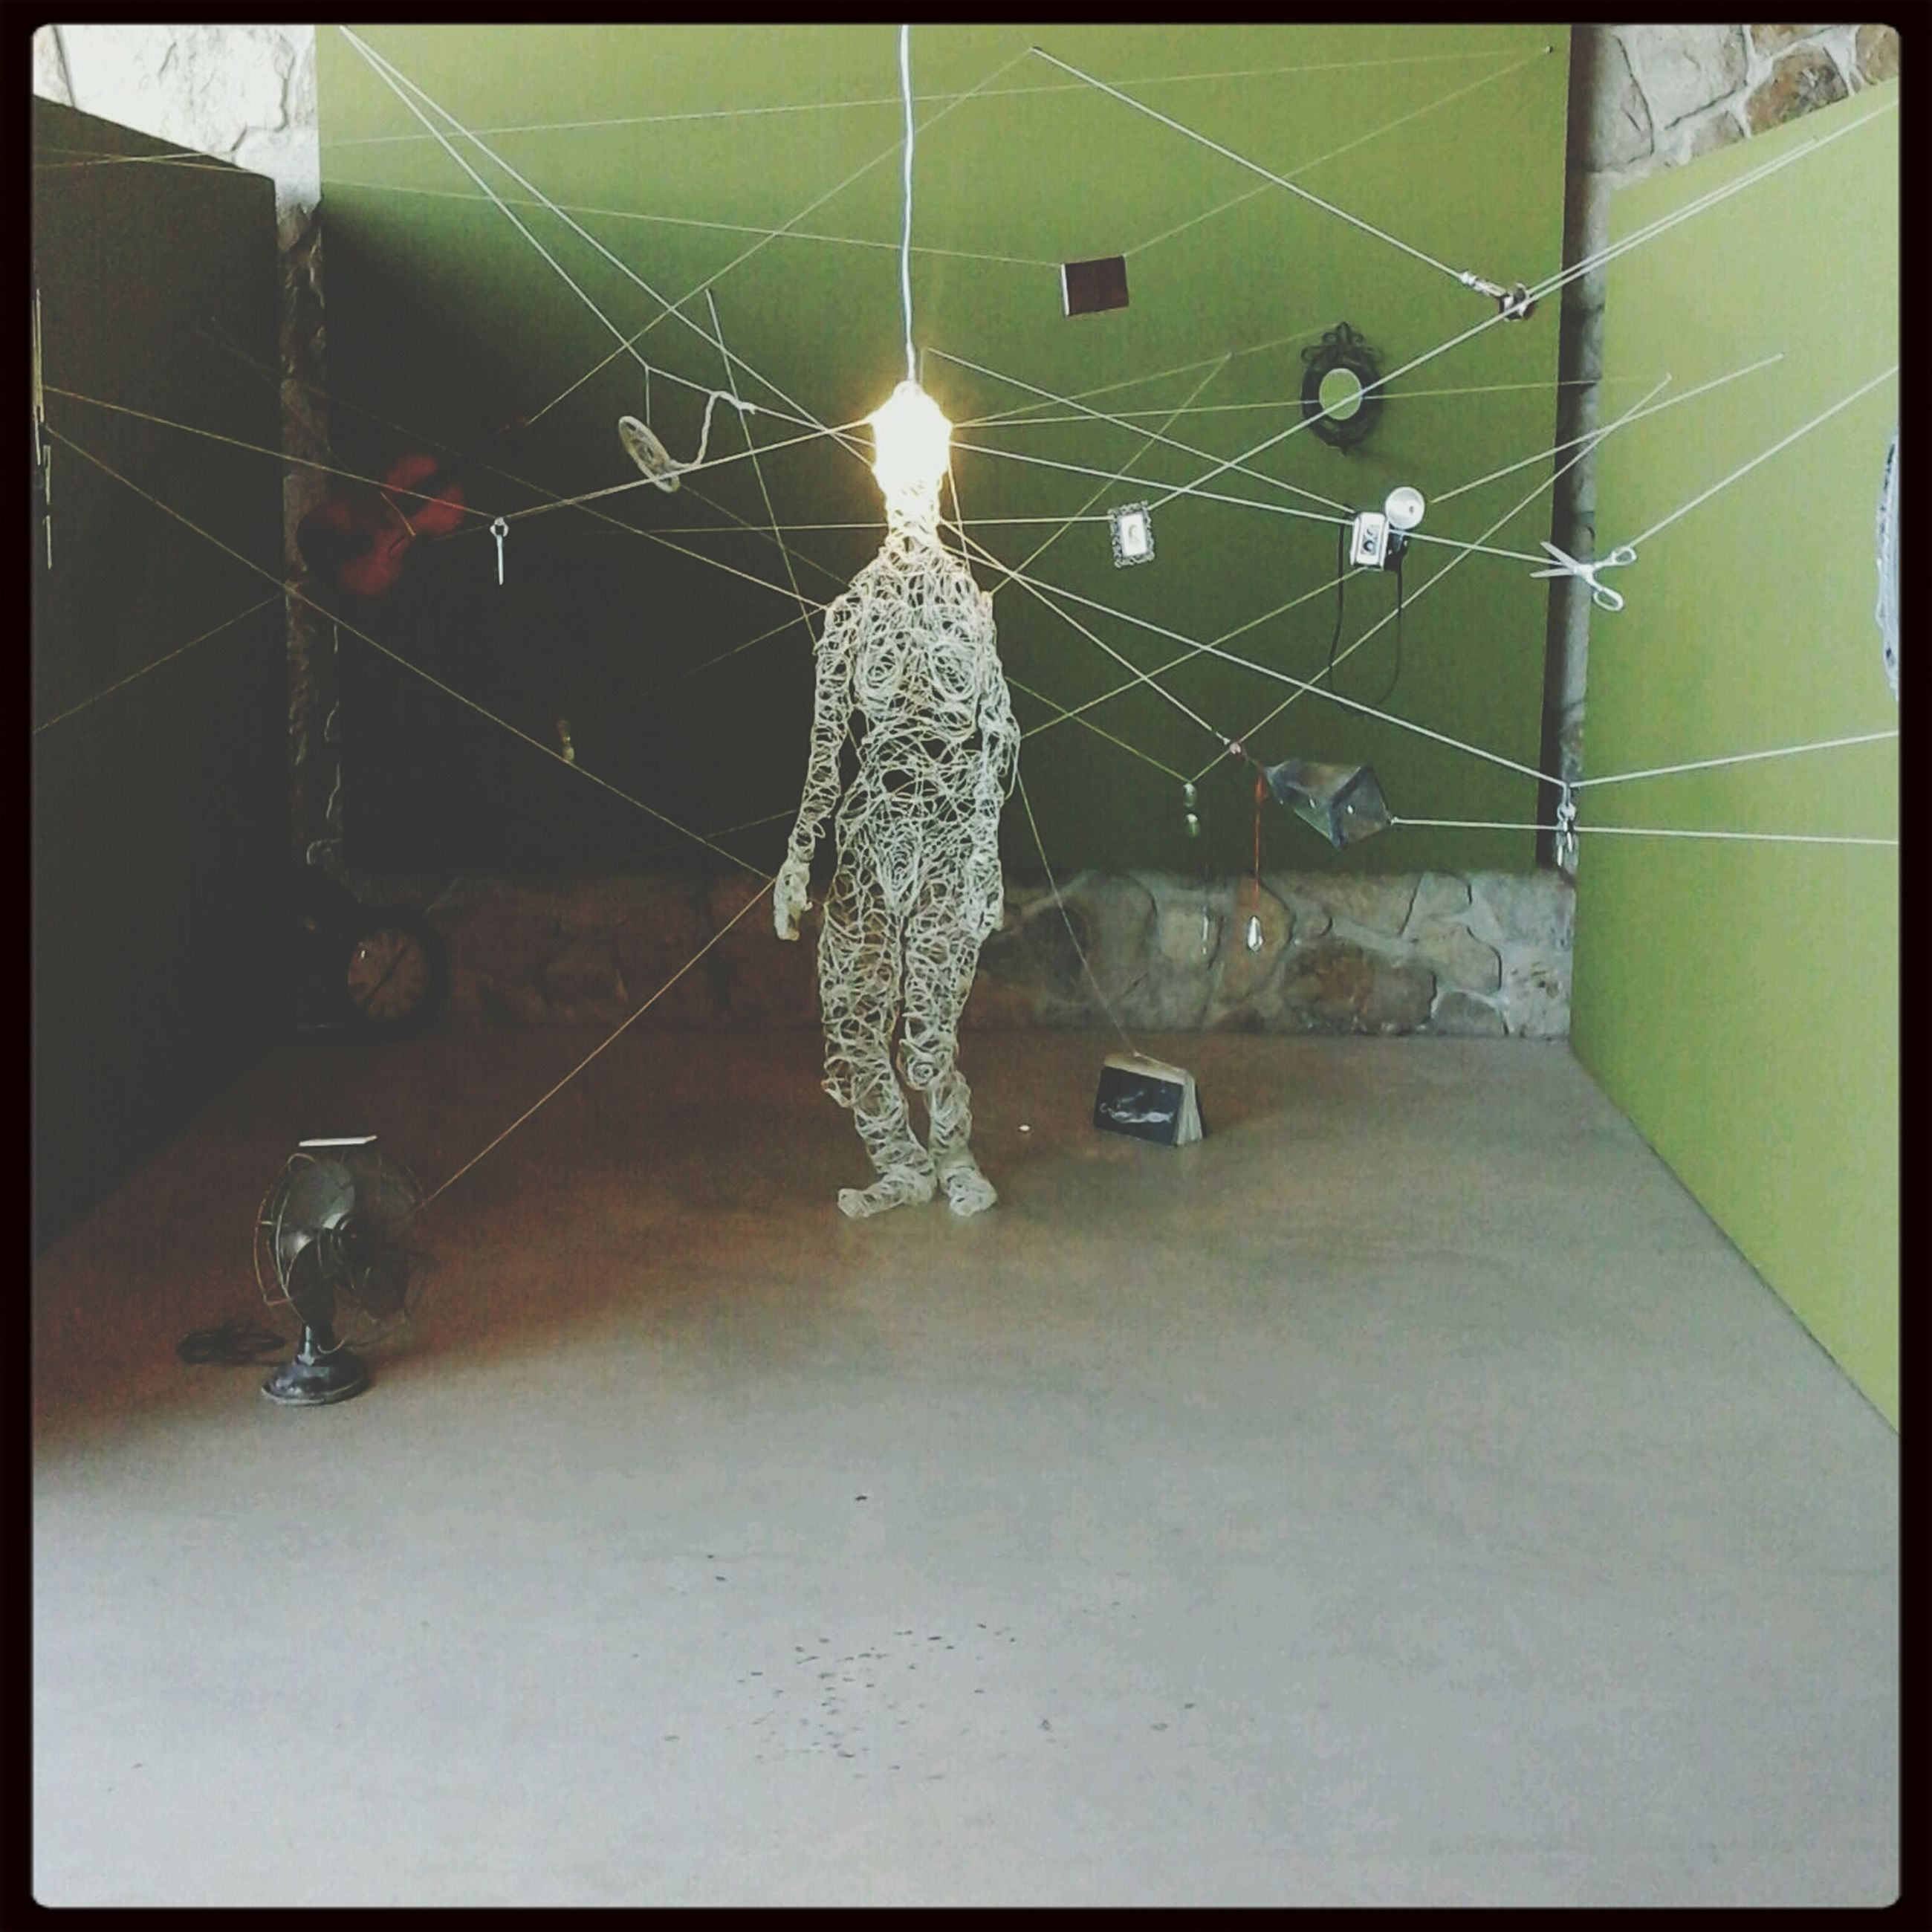 transfer print, auto post production filter, indoors, animal themes, night, illuminated, hanging, one animal, full length, spider web, built structure, no people, wall - building feature, decoration, lighting equipment, close-up, spider, architecture